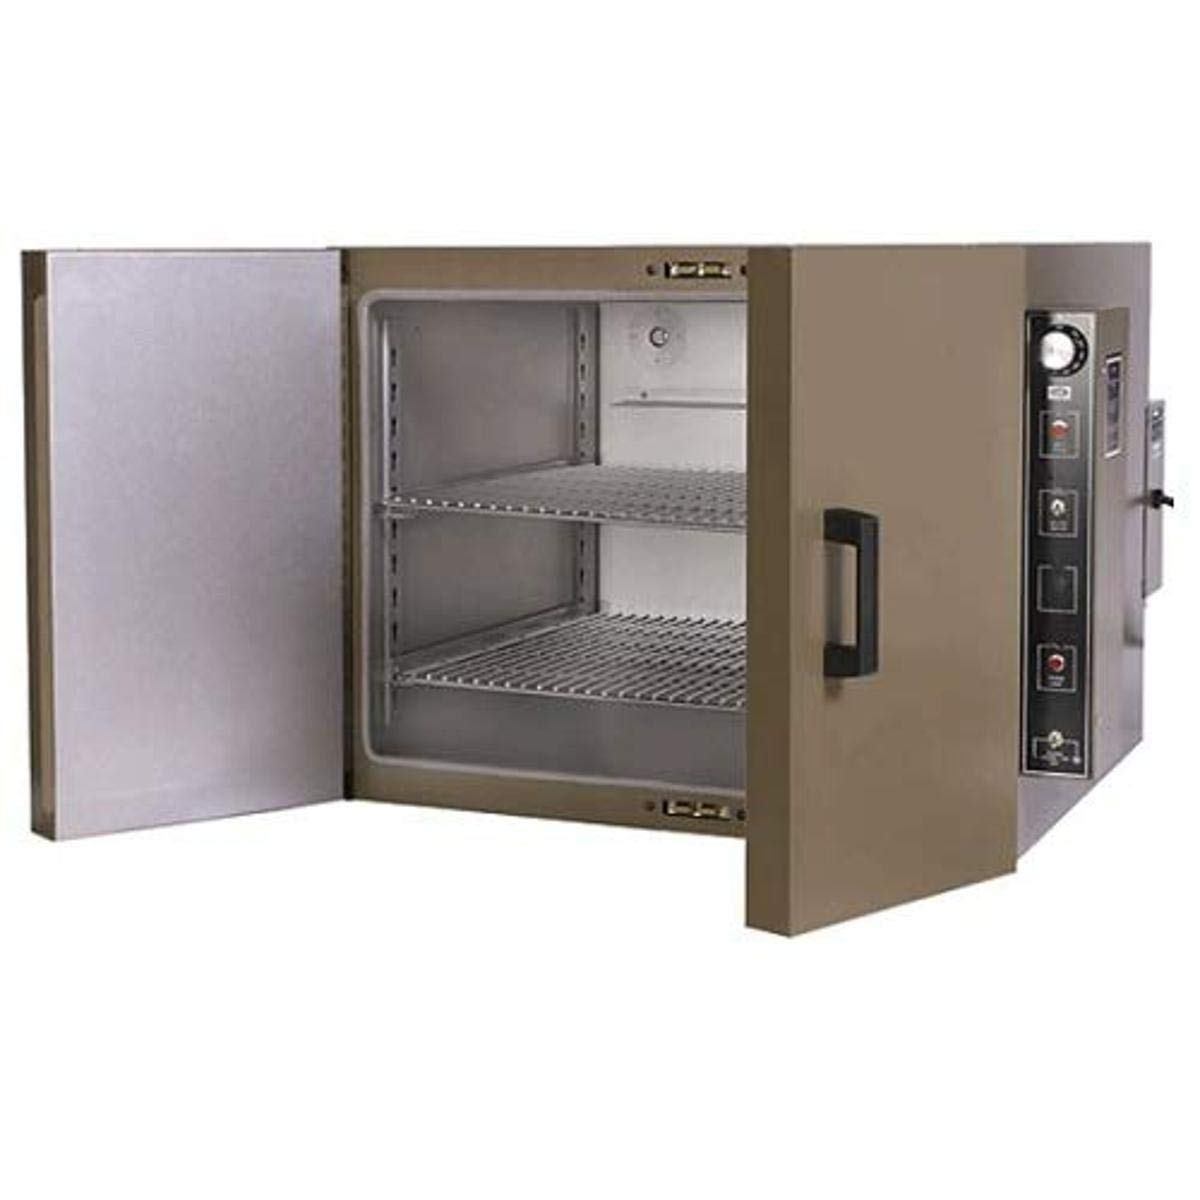 Quincy Lab 21-350ER Steel Bench Ranking TOP2 Oven Cont Super special price Digital Soak Ramp and